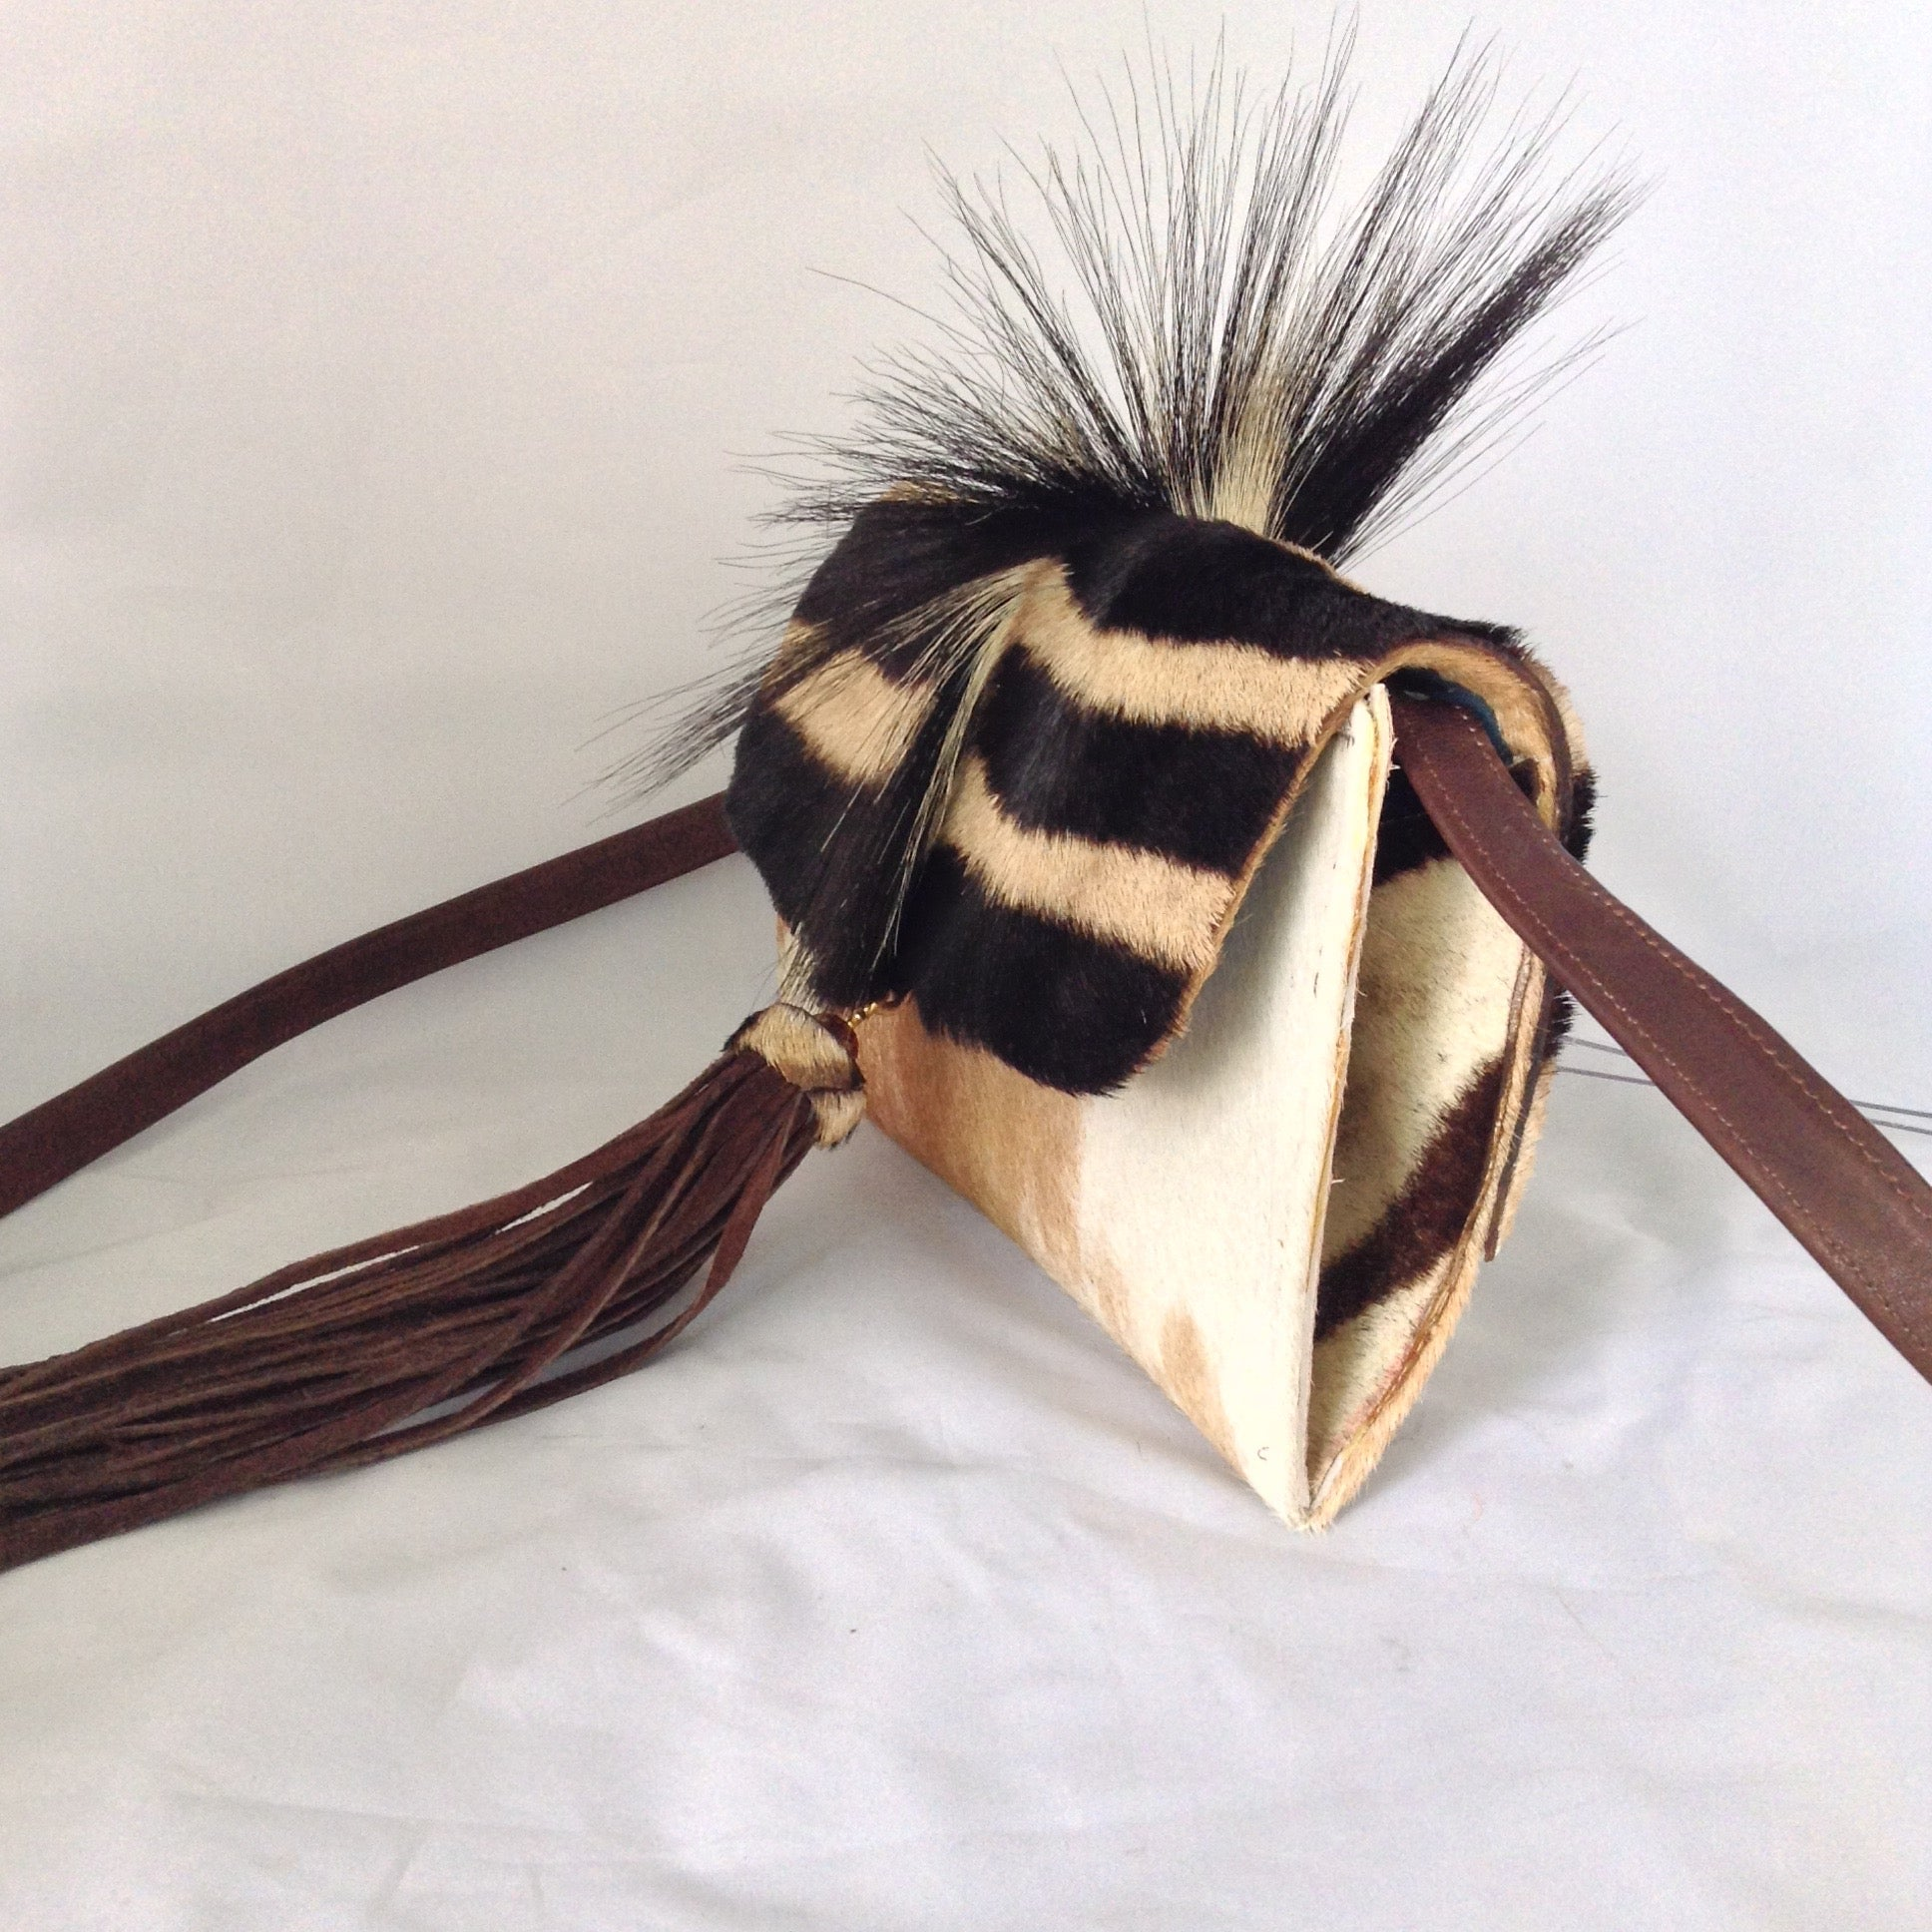 "Cow plus zebra adds up to a fabulous cross-body/clutch with attitude! This adorable vintage purse is made from real cowhide and African zebra pelt with mane, suede lining, fabulous suede tassel, detachable leather cross-body strap. What more could a girl want?  Dimensions - Height 6""; Width 10""; Depth 2"""